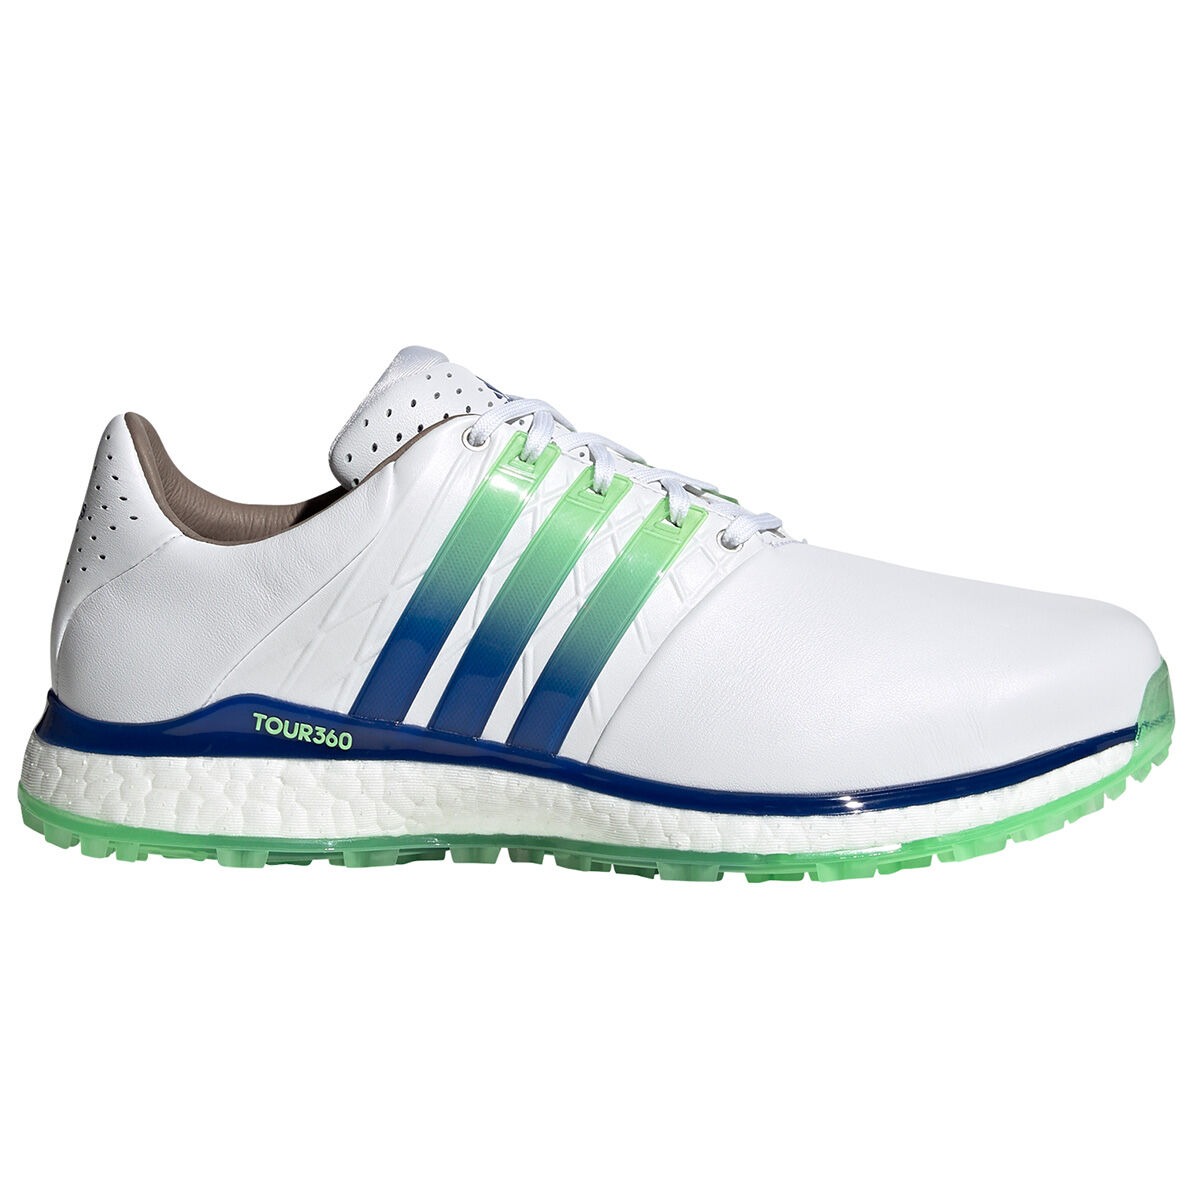 adidas Golf Tour 360 XT-SL 2 Shoes from